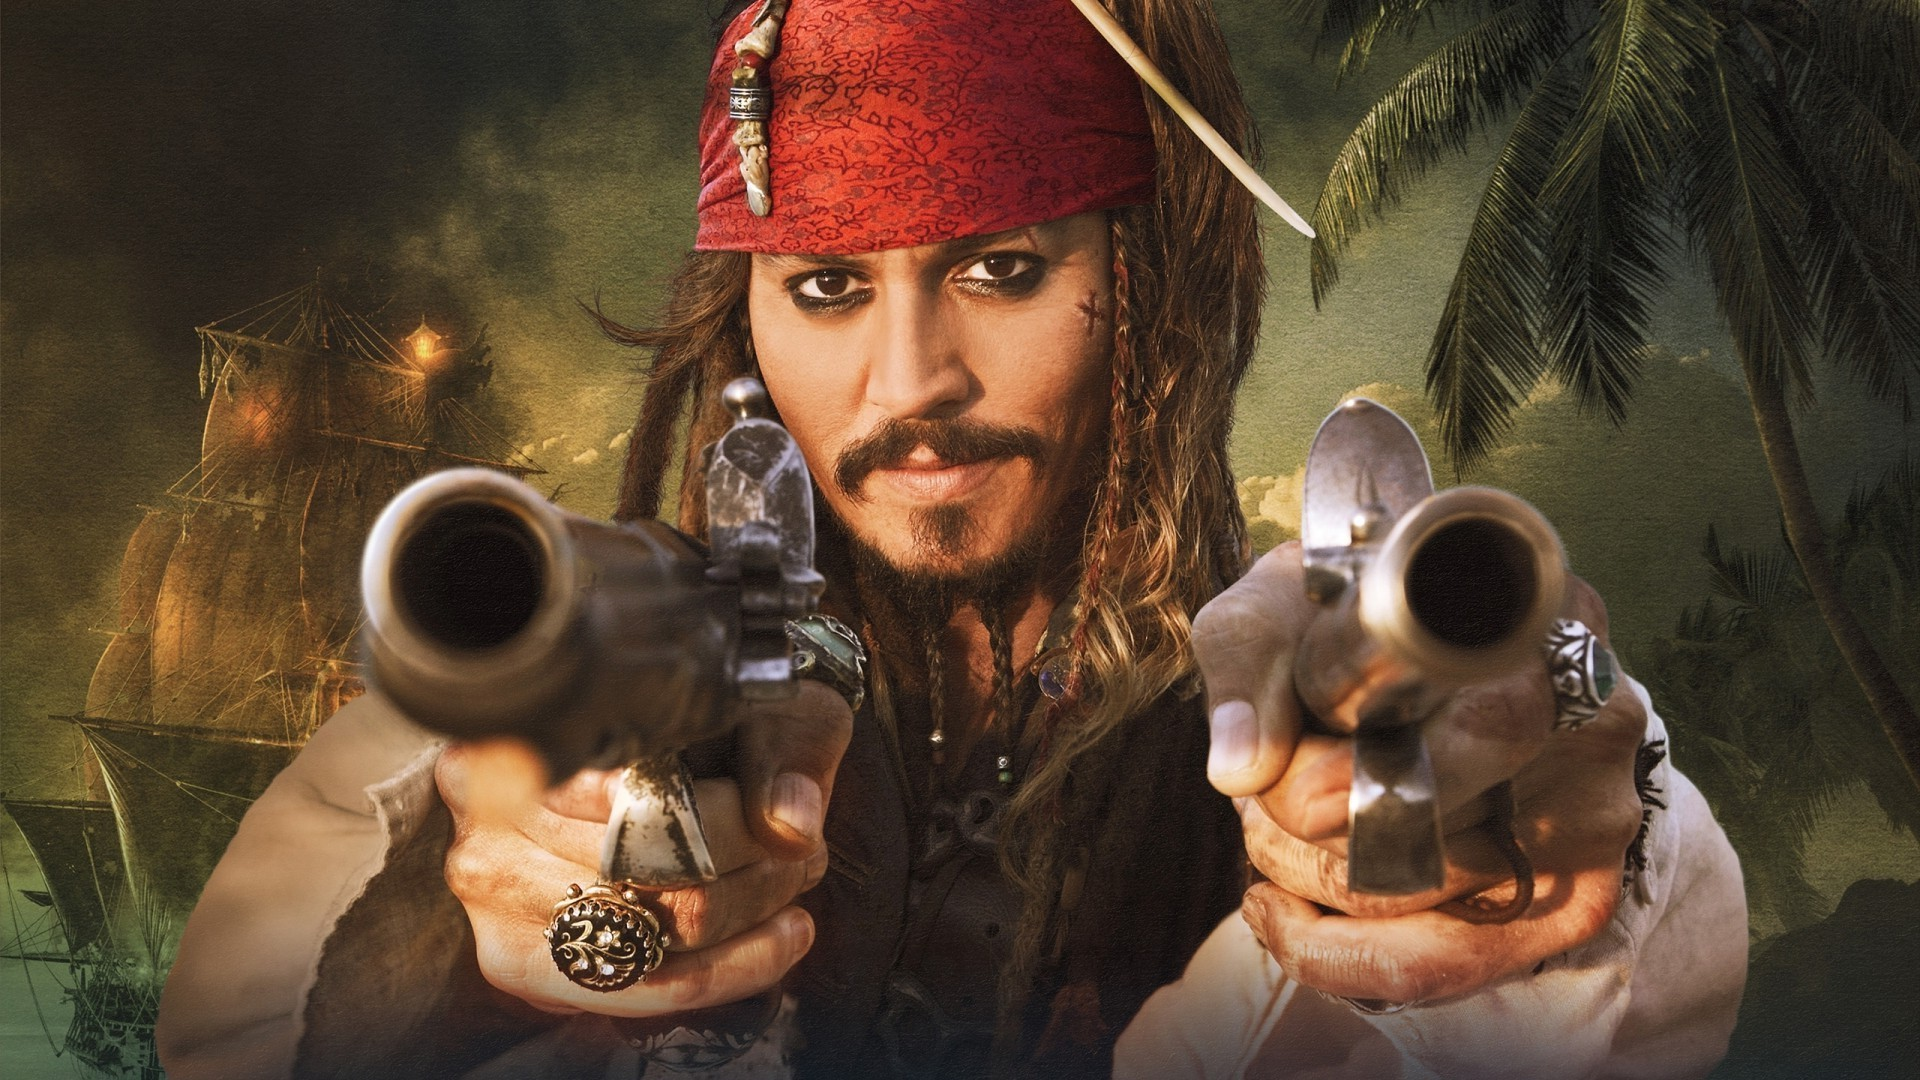 jack sparrow wallpaper ·①